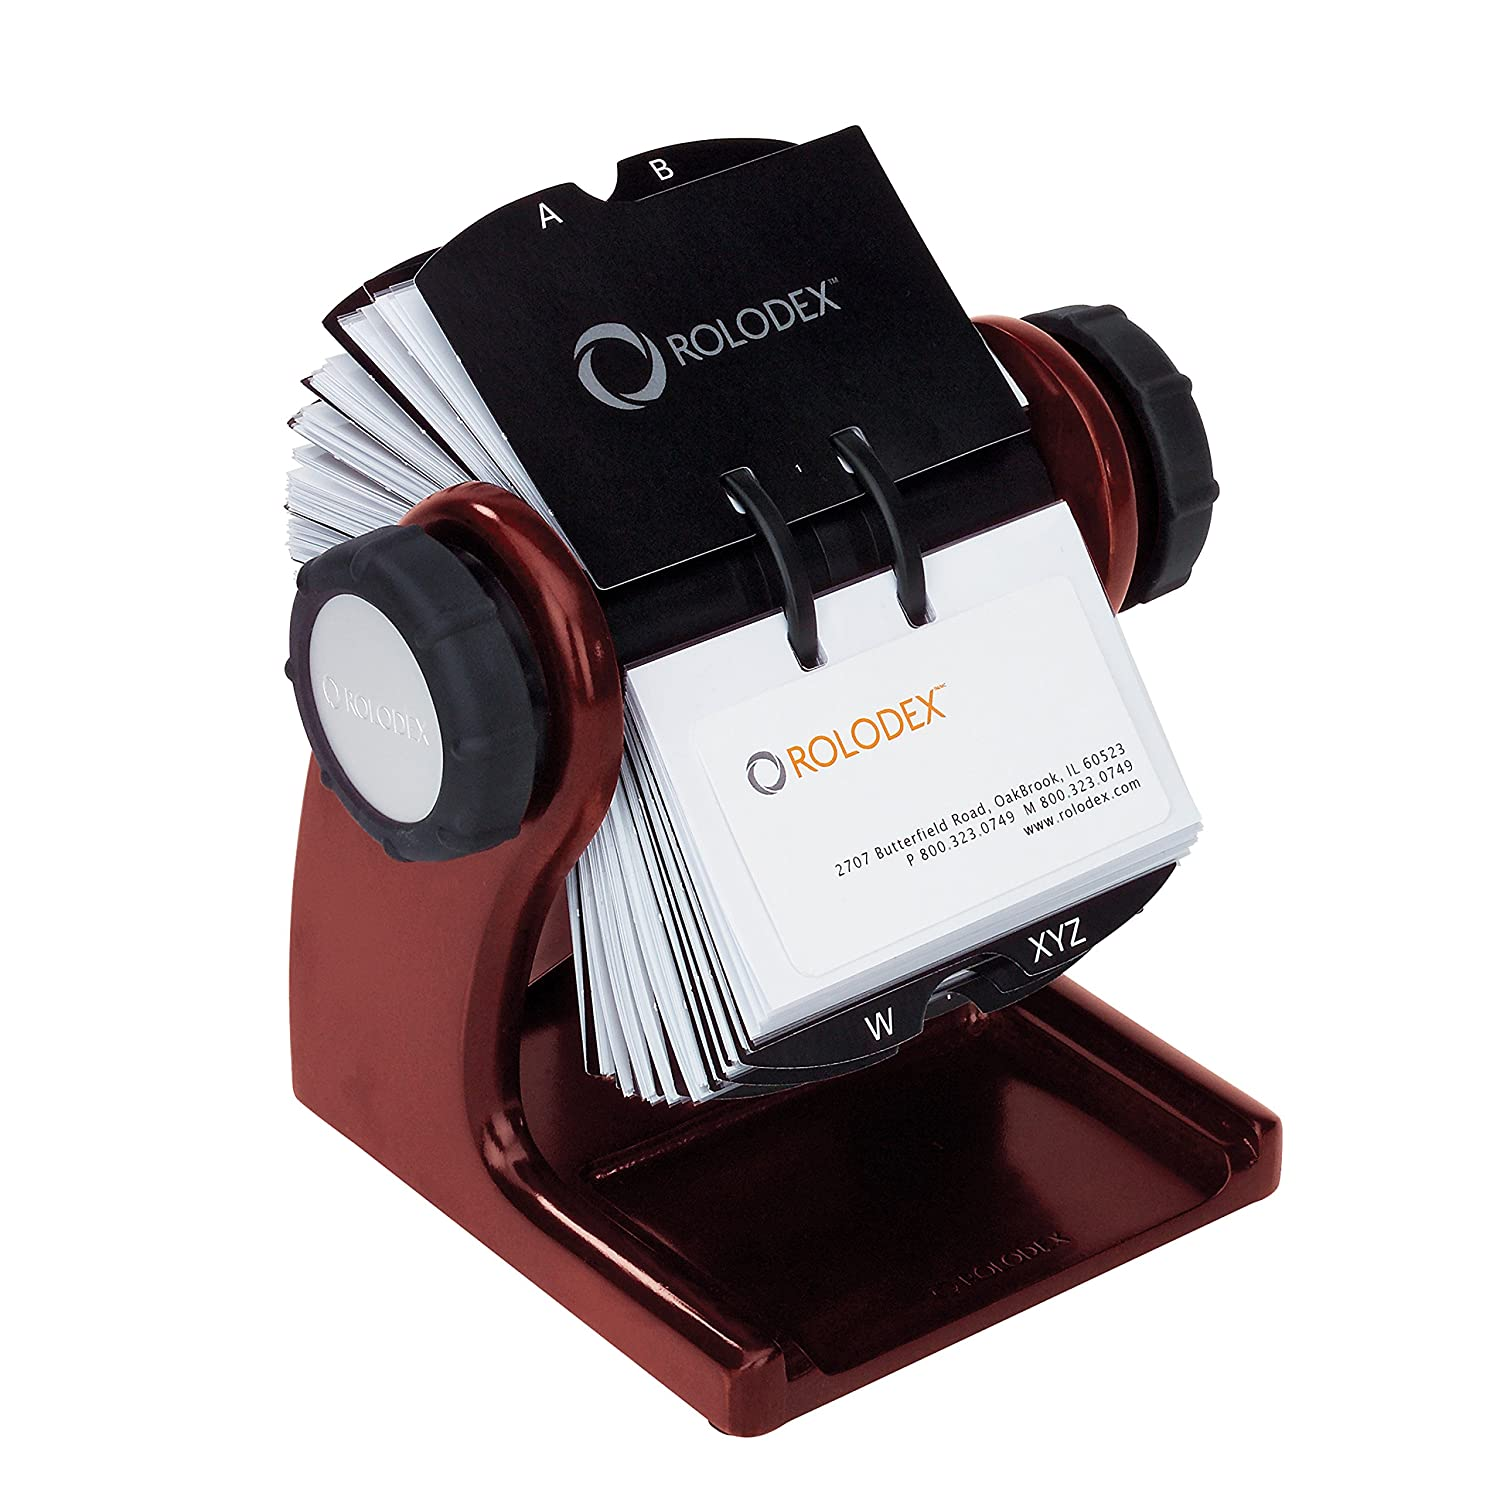 Amazon.com : Rolodex Wood Tones Collection Open Rotary Business ...